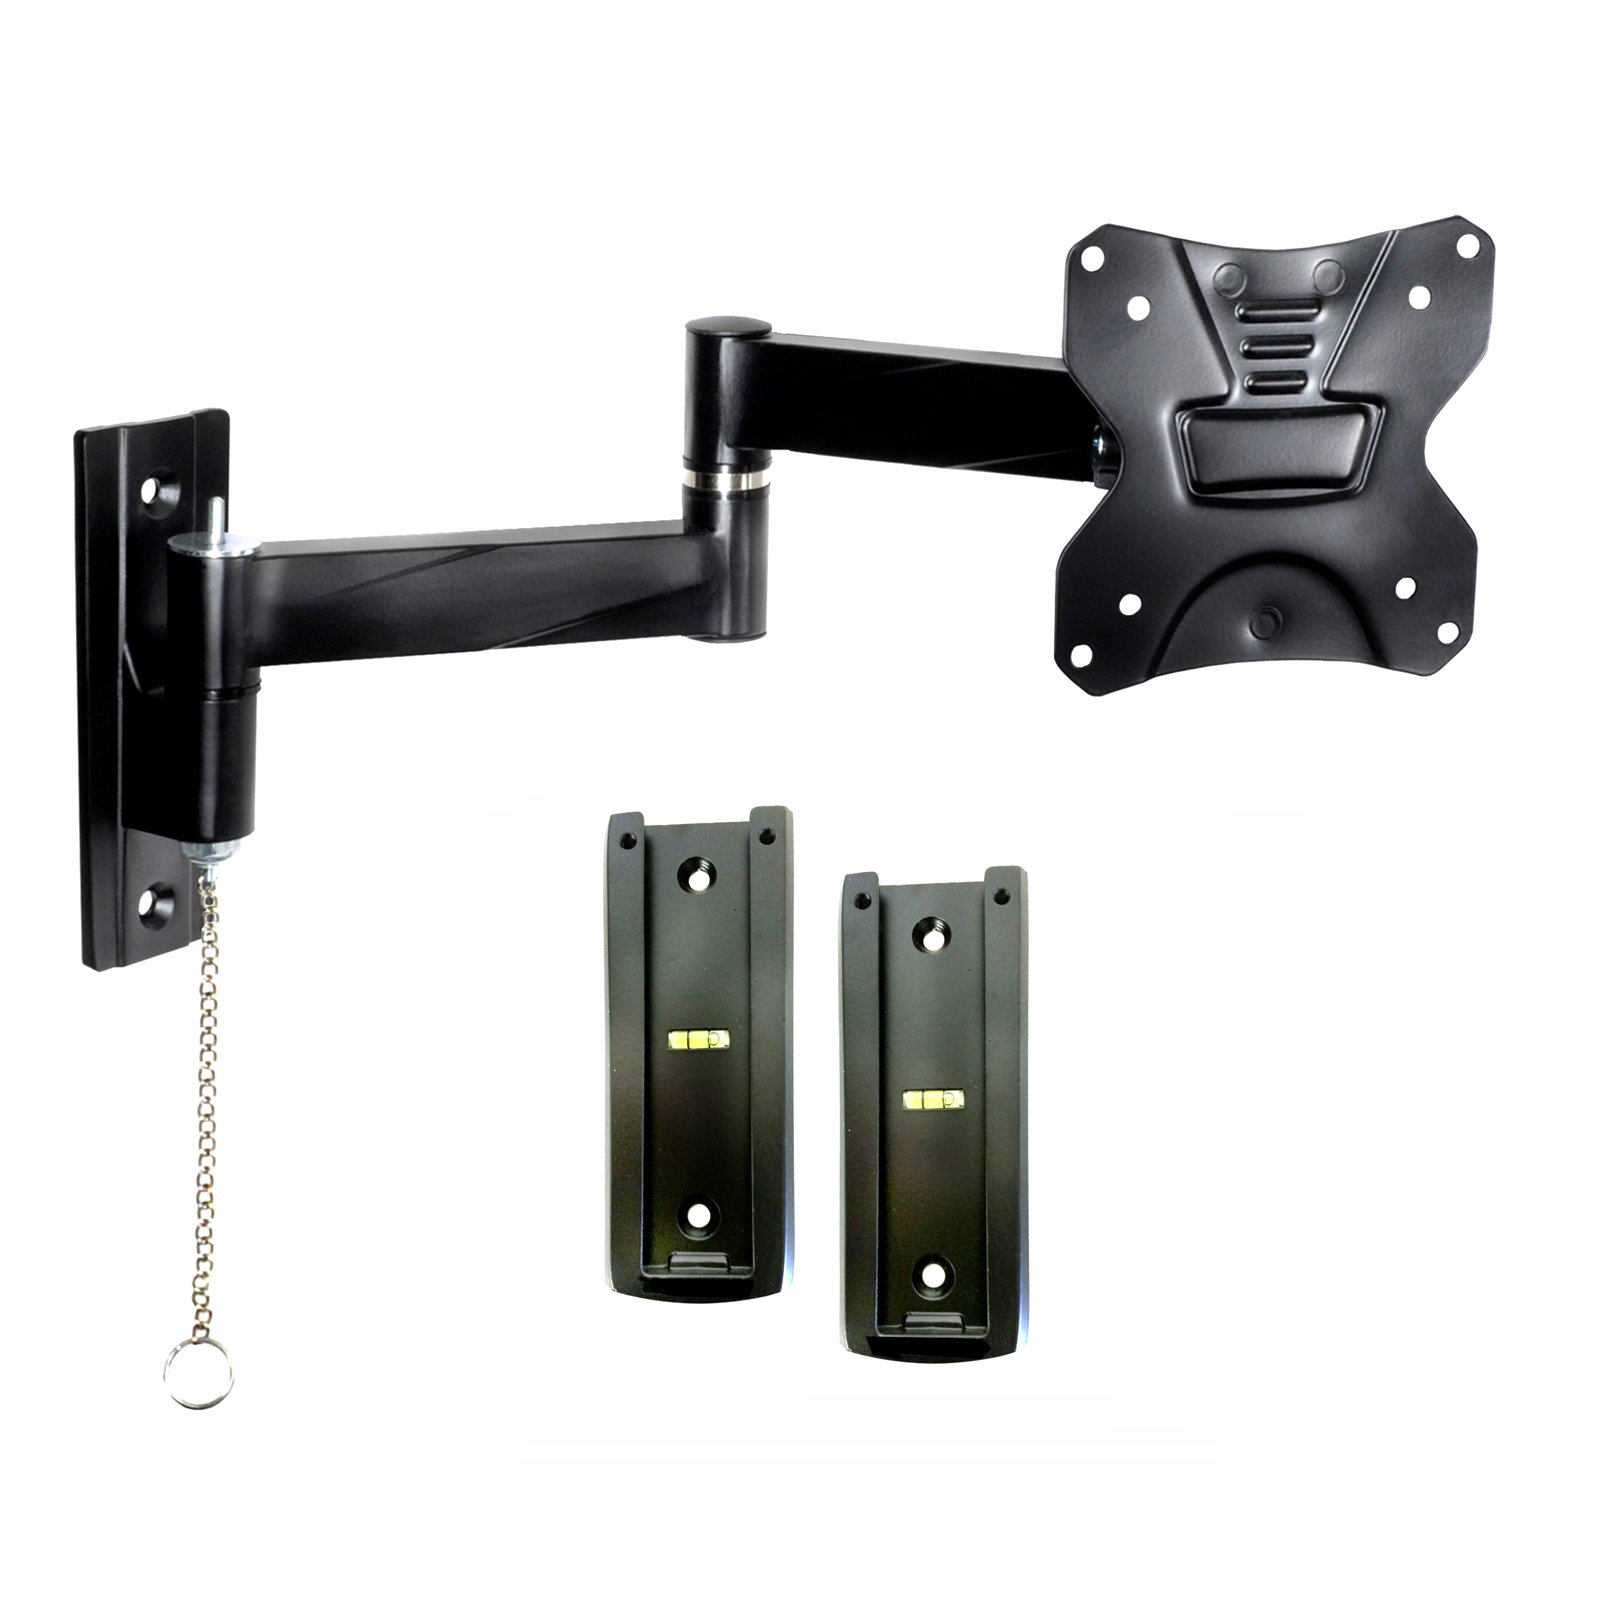 Portable Travel RV TV Mount with Locking Articulating Arm 2311L-2 Allows 1 TV to be Used in 2 Locations, 2 Wall Brackets & 1 Locking Mount Keeps TV Secure in Moving Vehicles up to VESA 100x100